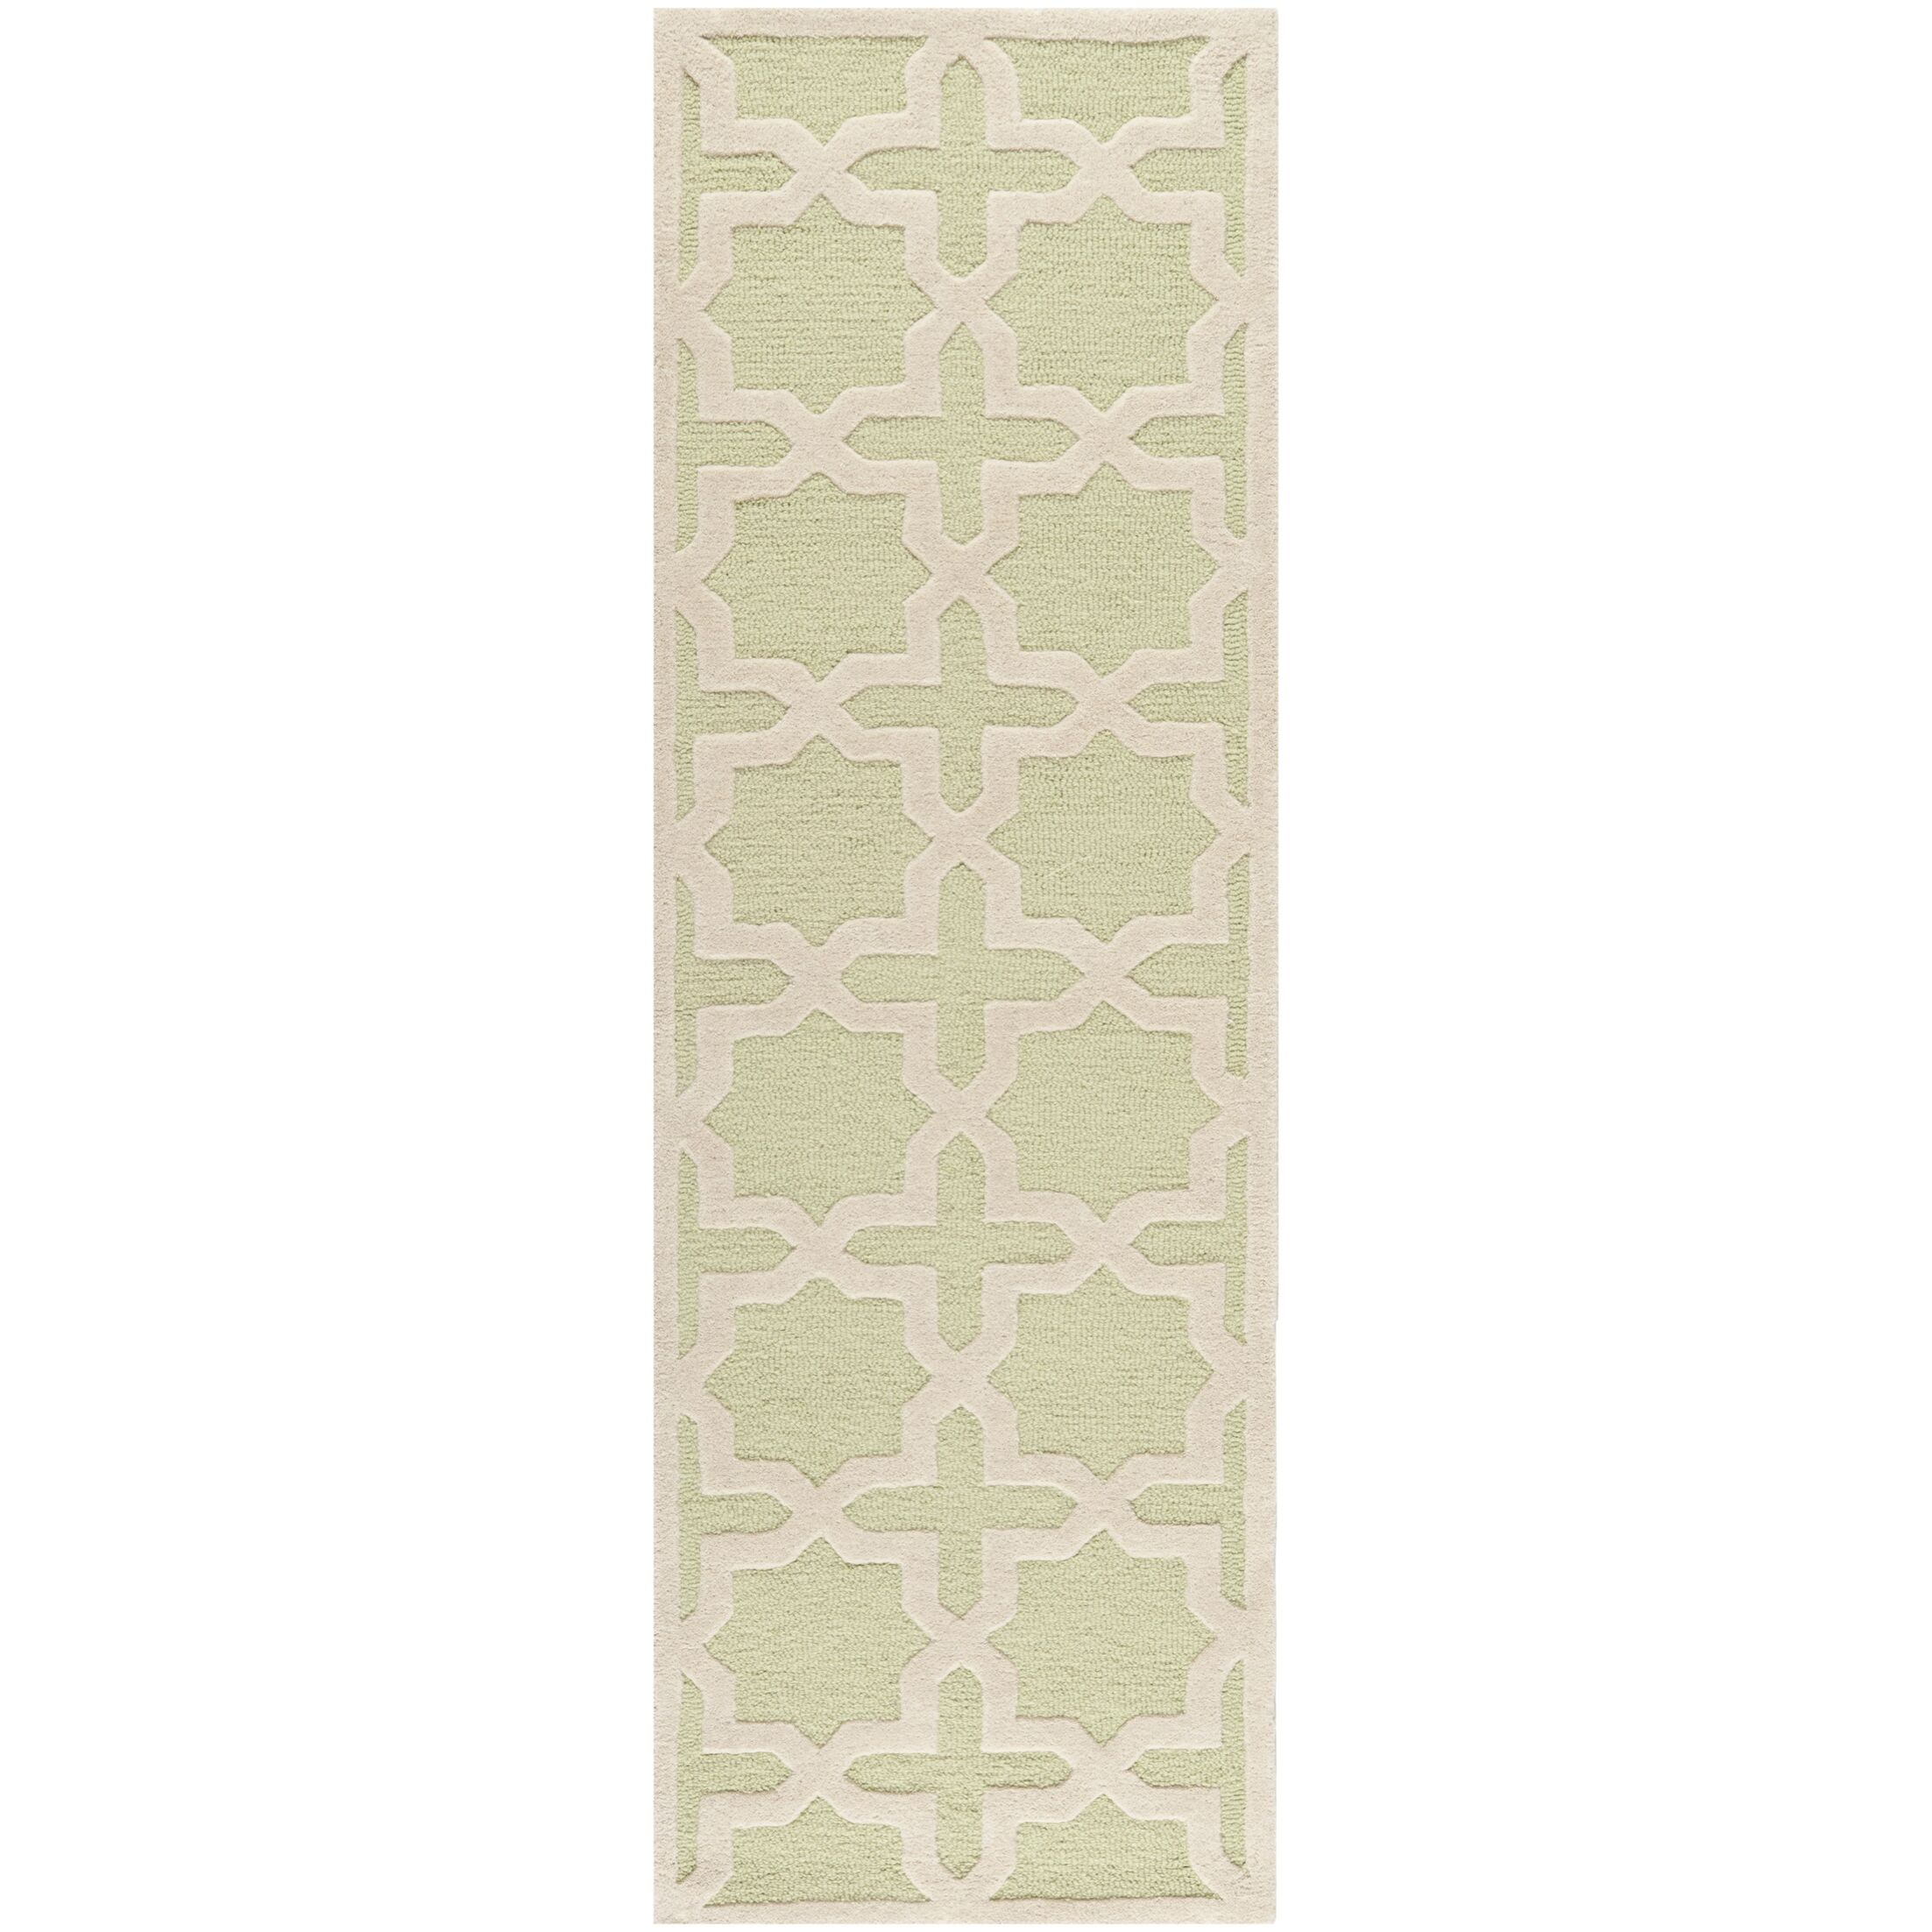 Darla Hand-Tufted Wool Light Green/Ivory Area Rug Rug Size: Runner 2'6